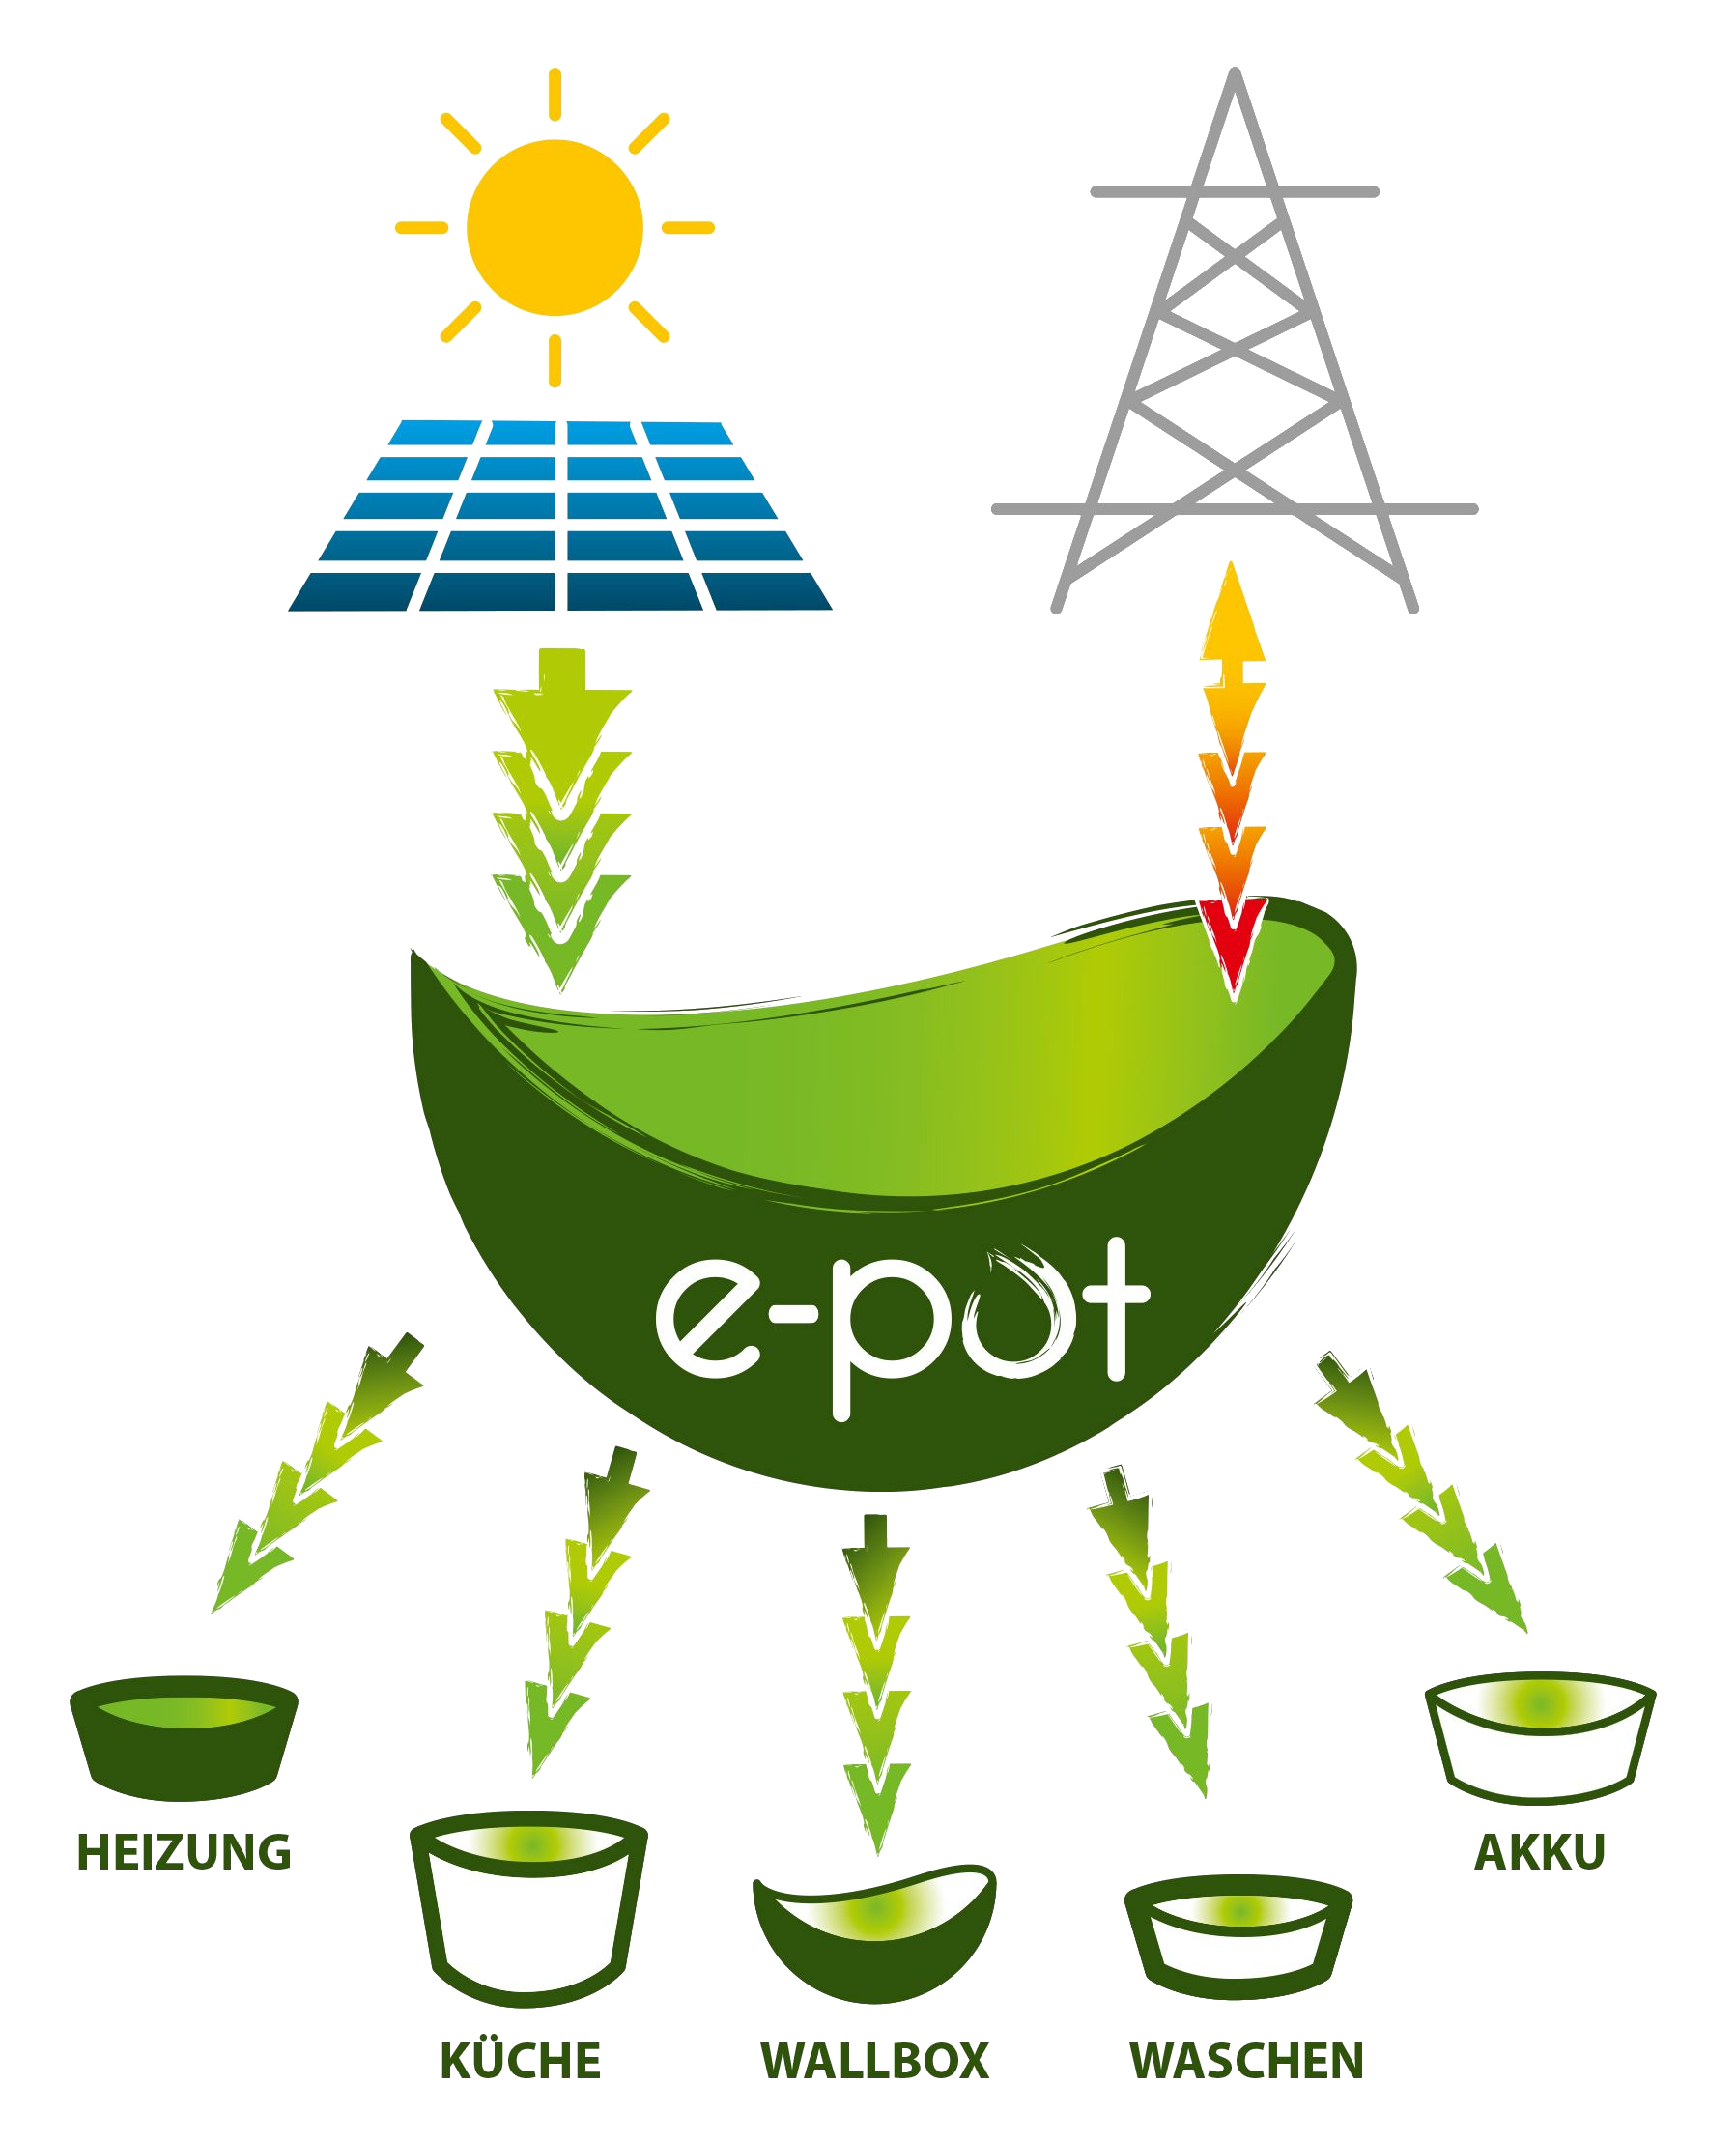 e-pot Grafik K5_7_2020-2